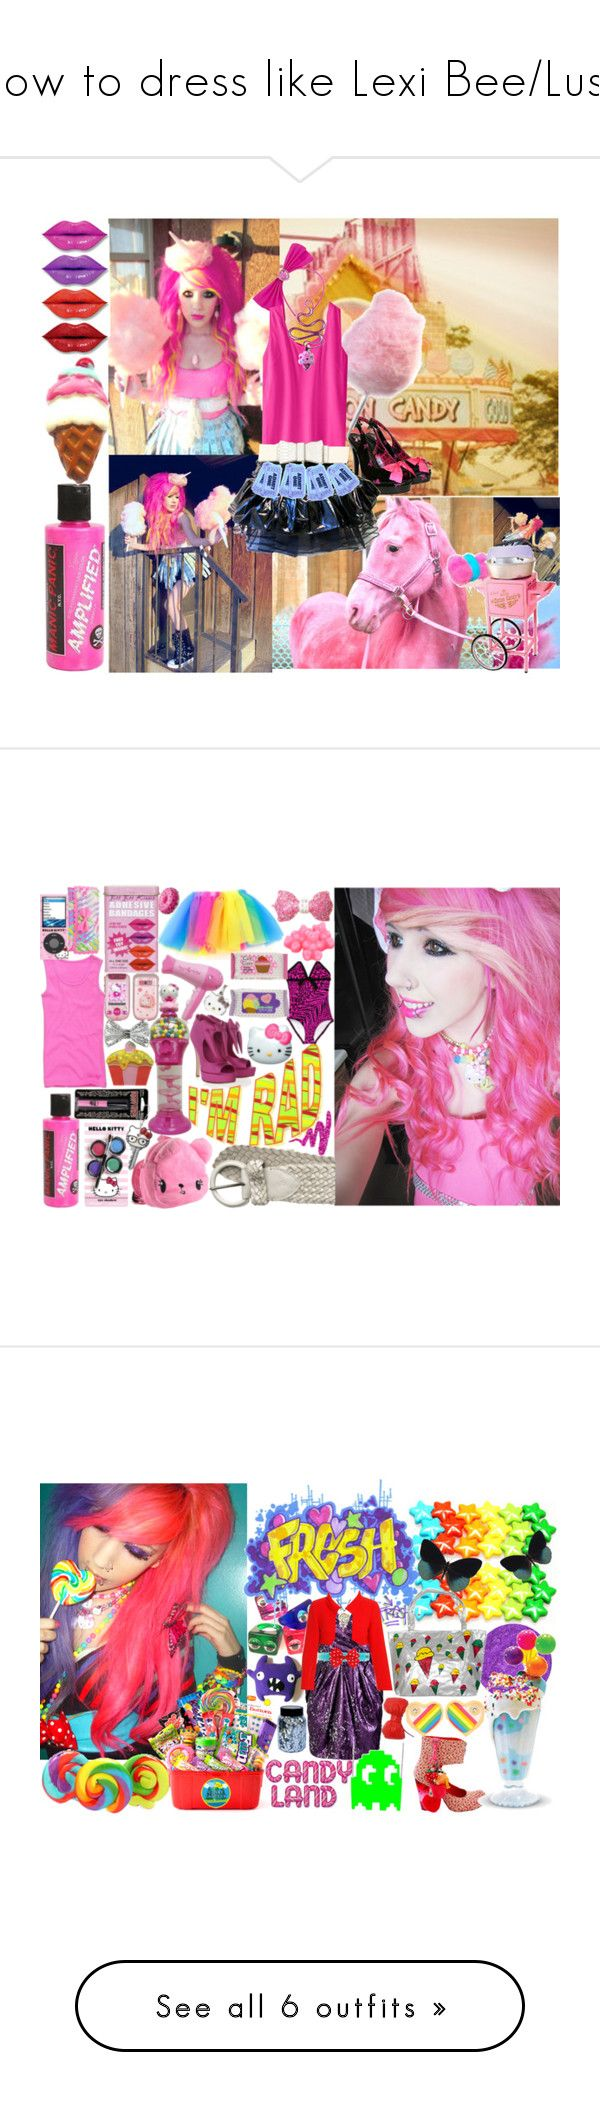 """""""How to dress like Lexi Bee/Lush"""" by yourfaceissmiling ❤ liked on Polyvore featuring Manic Panic NYC, Iron Fist, Cotton Candy, Hell Bunny, Reiko Ladies, E.vil, Dollydagger, Hello Kitty, PBteen and Matthew Williamson"""